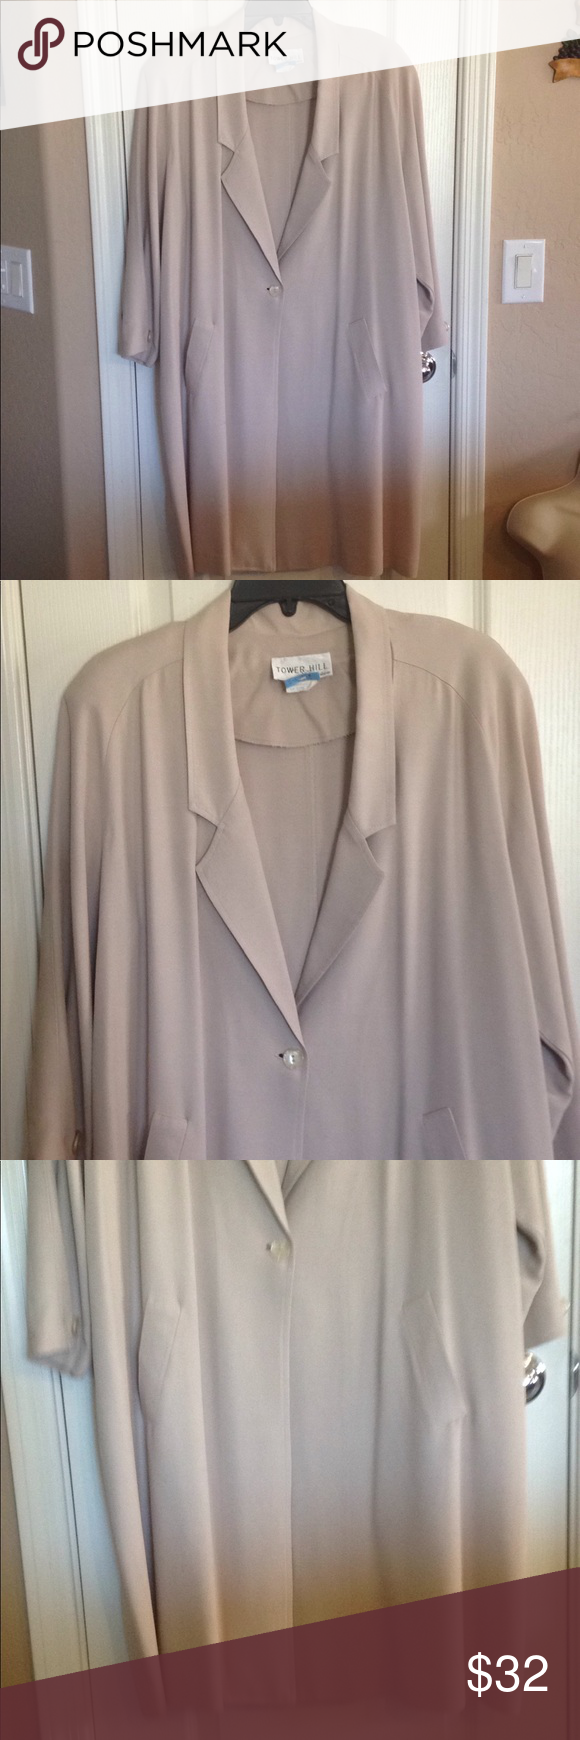 c8cdc8a30 Tower Hill Collection Long Beige Jacket – size 18 Tower Hill ...